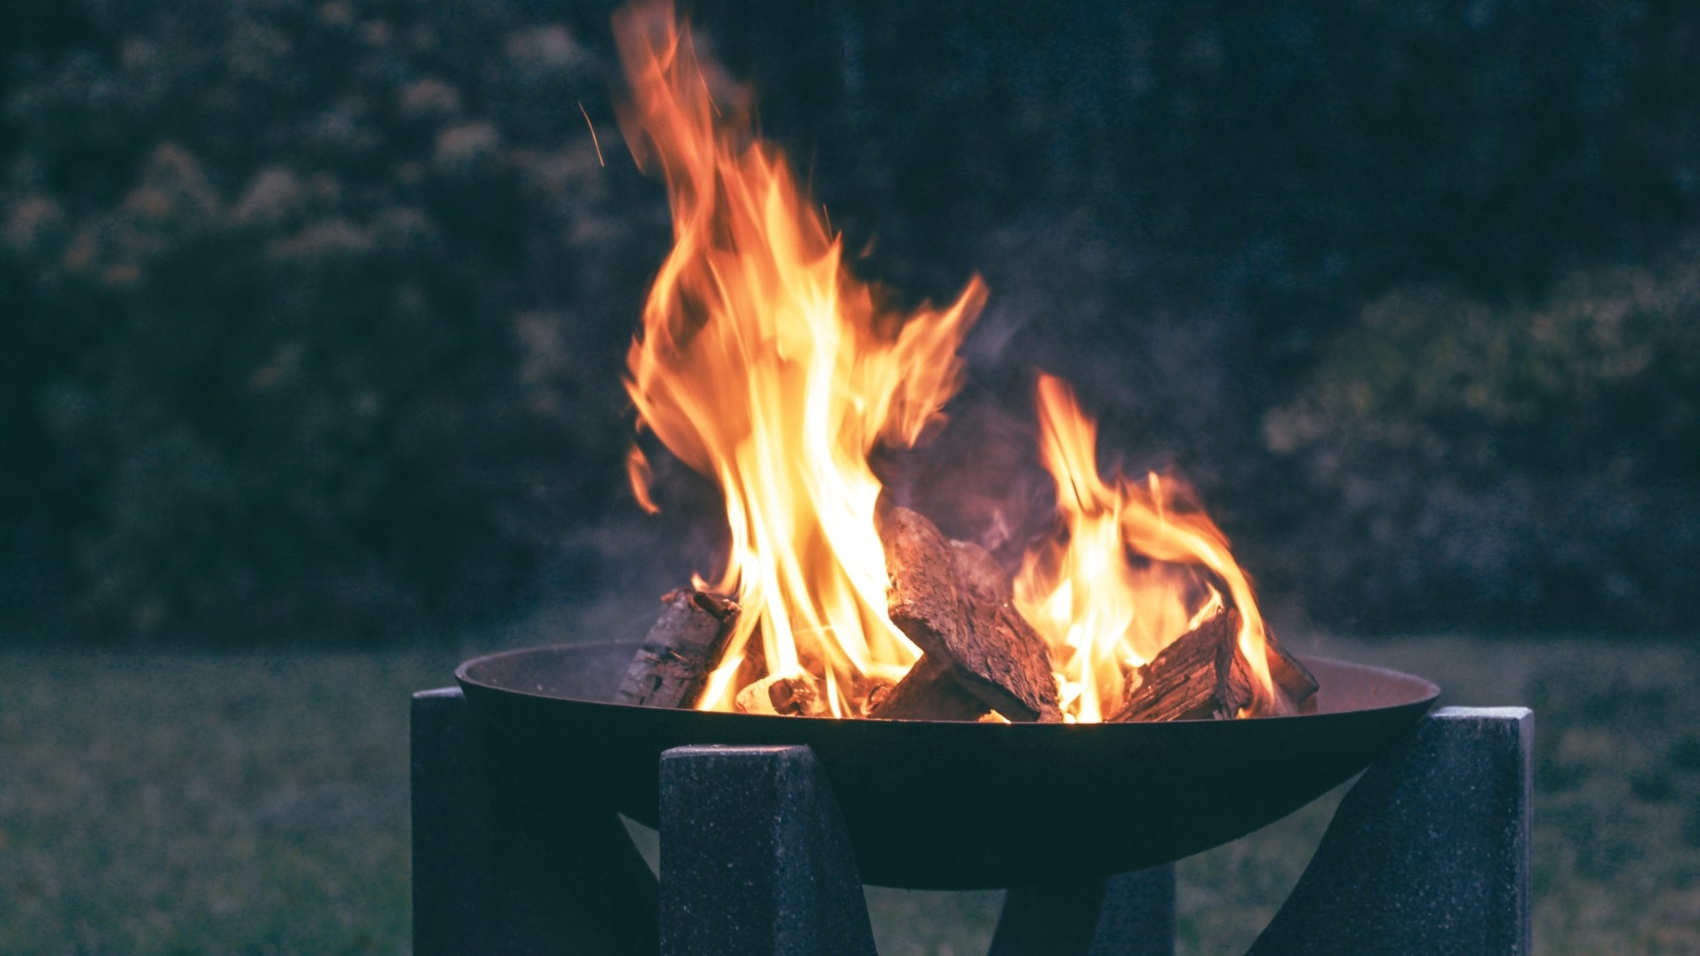 Bring the Warmth of Lohri into Your Homes This Winter